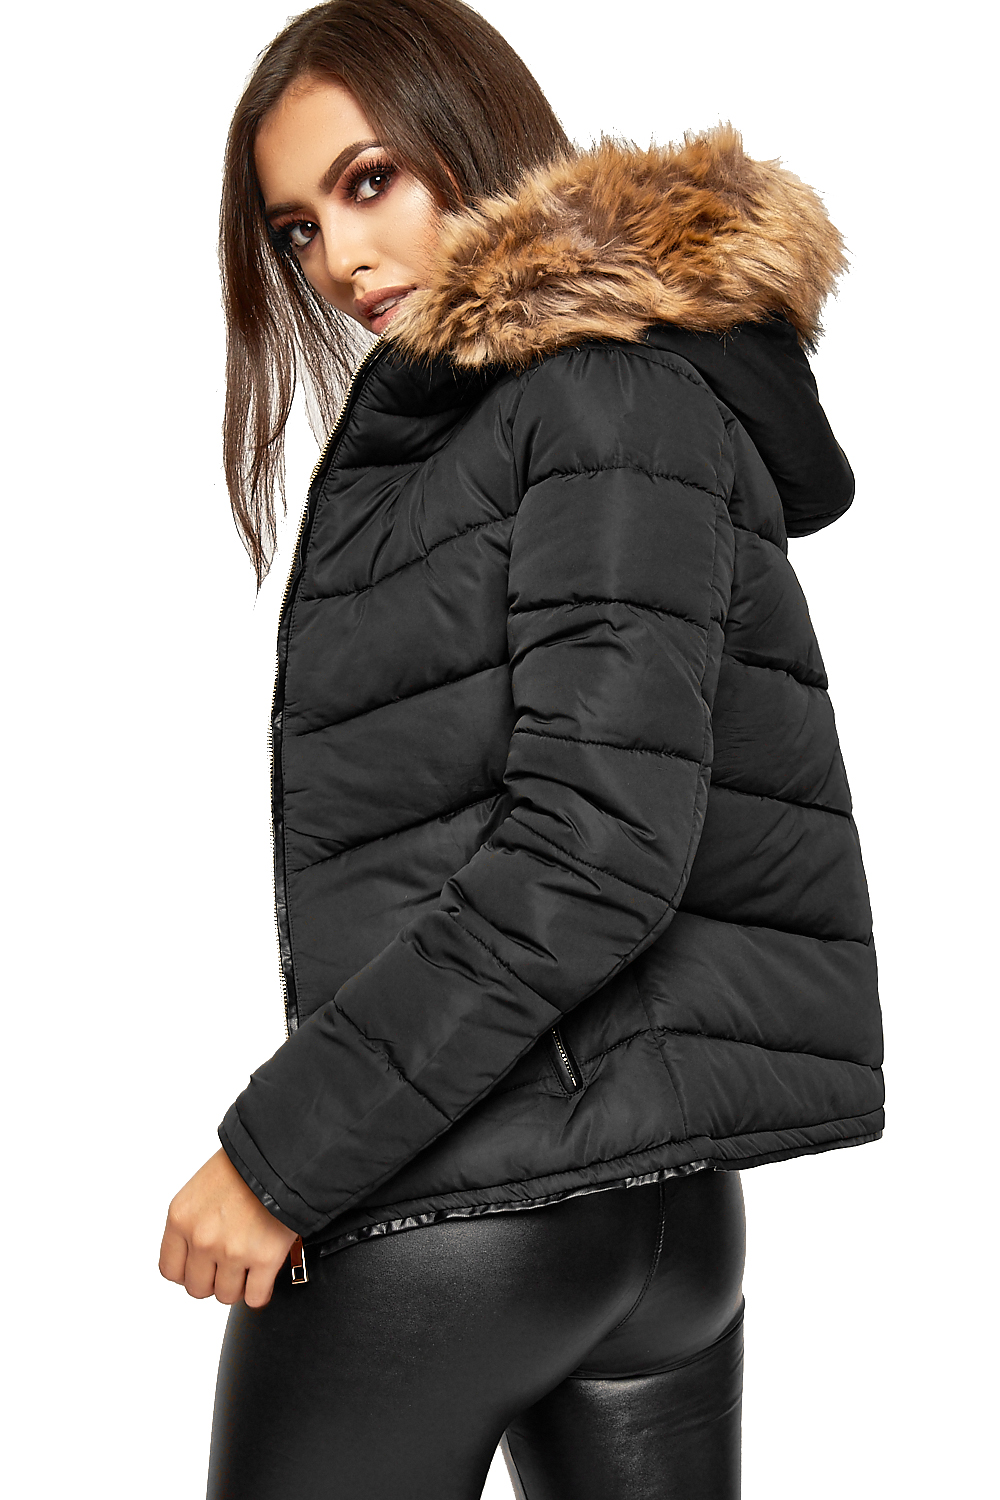 Ladies black puffer coat with fur hood